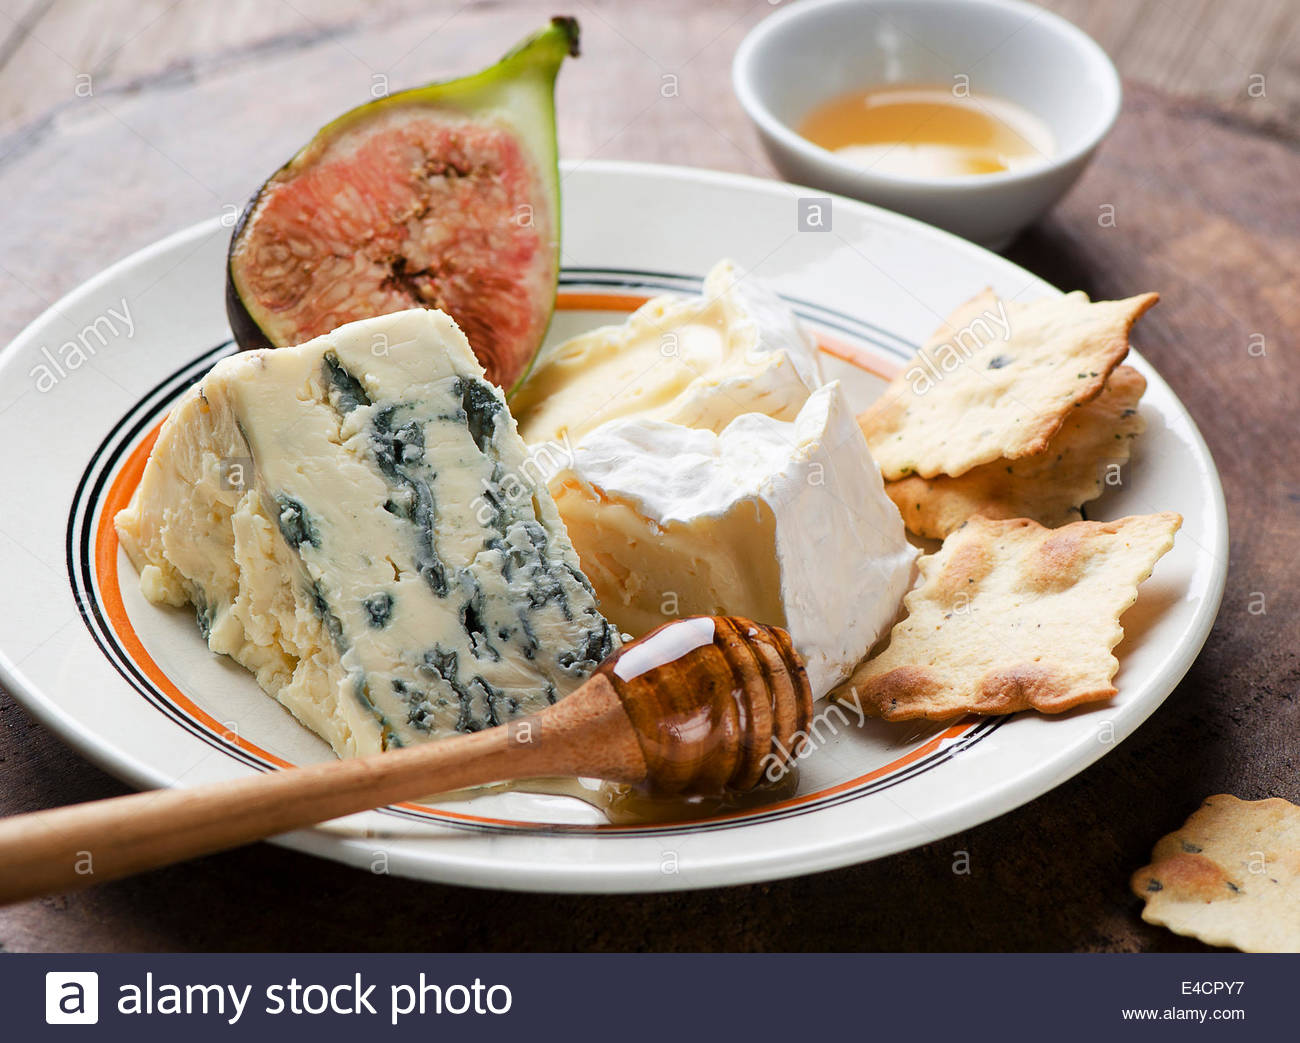 Assortment of fresh cheeses and honey with fig and crackers - Stock Image